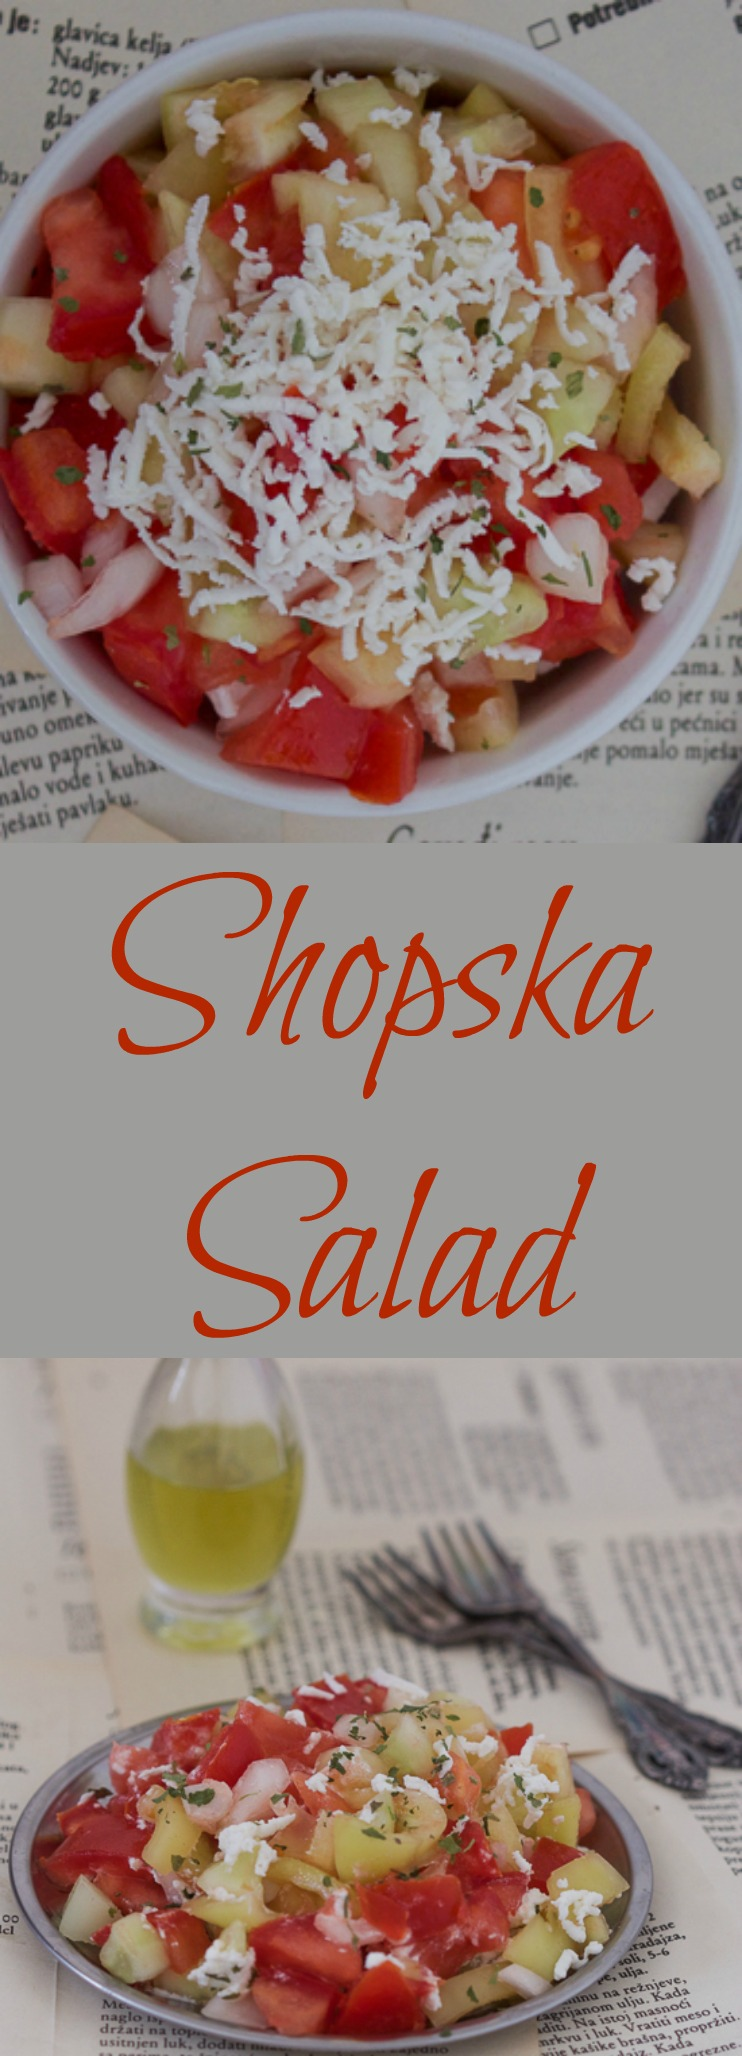 Shopska salad is a light, spring salad consisting of veggies with grated cheese on top. Perfect to take to a barbecue.